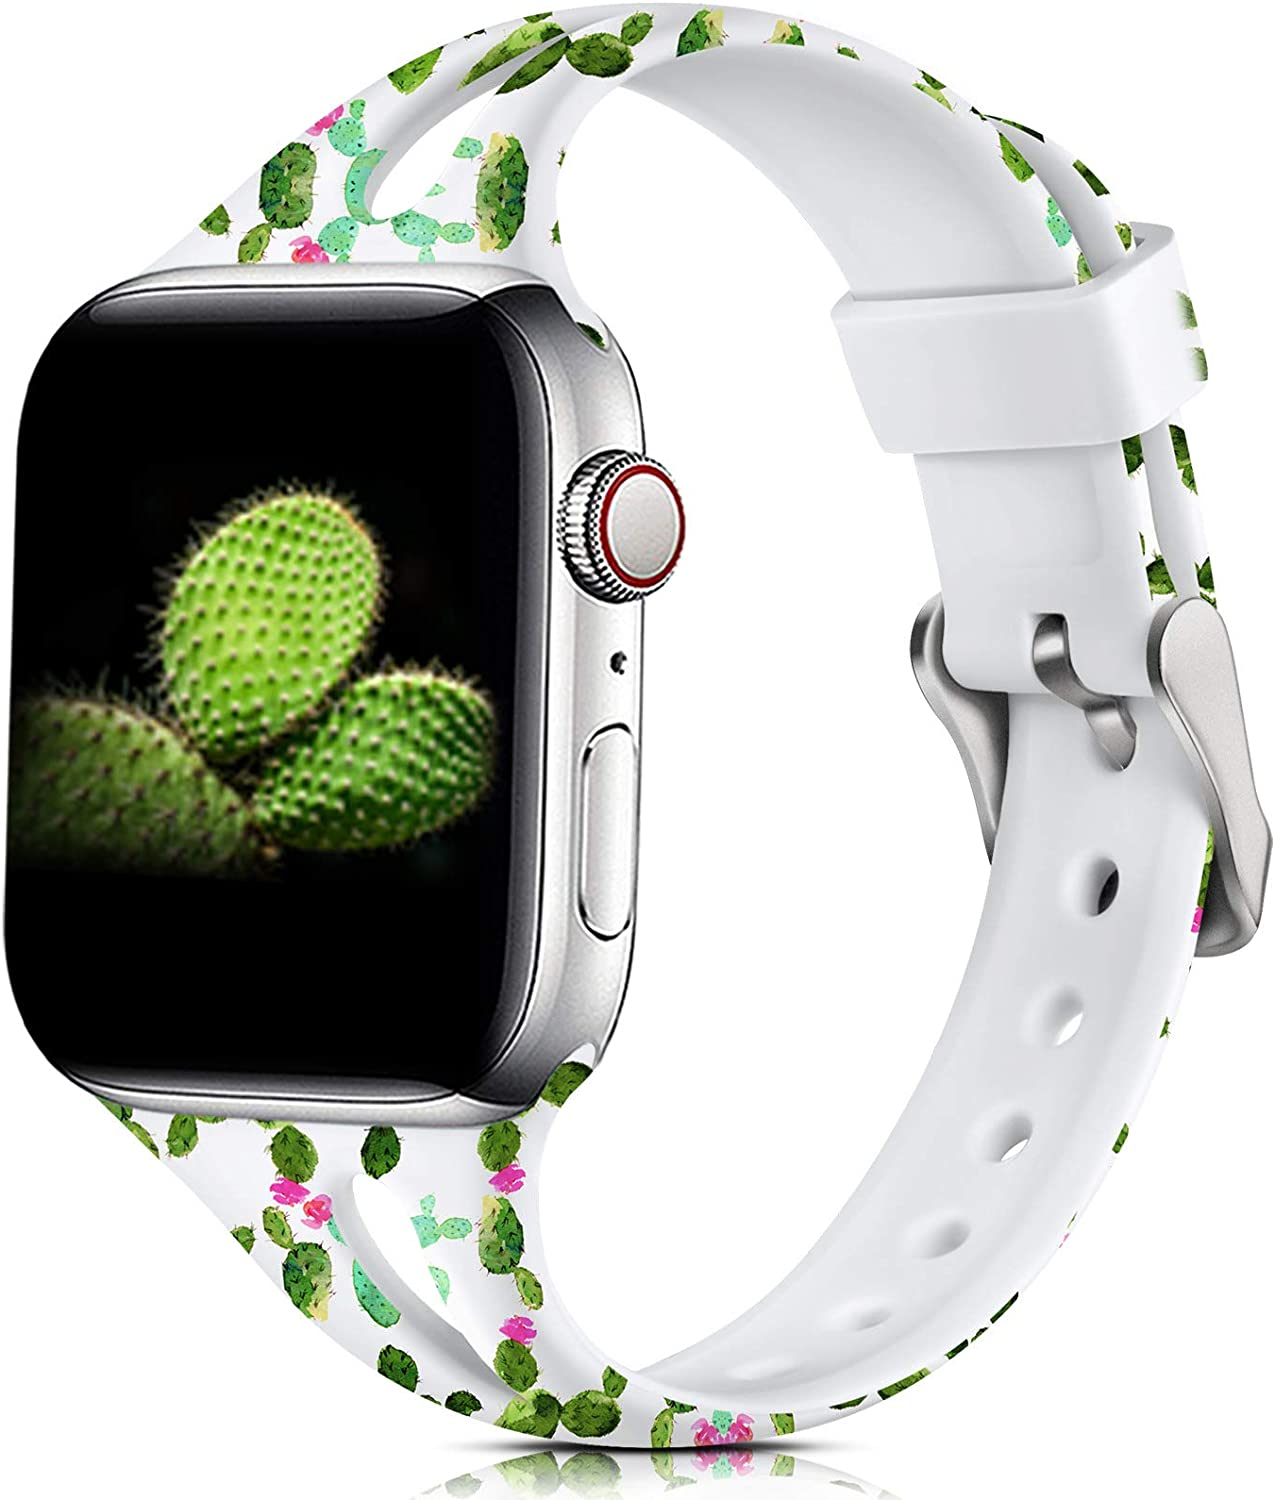 Easuny Floral Bands Compatible for Apple Watch 40mm Series 6 Series 5 4 for Women, Soft Slim Band for Apple Watch SE ,iWatch 38mm Series 3 2/1, Printed Silicone Fadeless Wristband S/M, Cactus